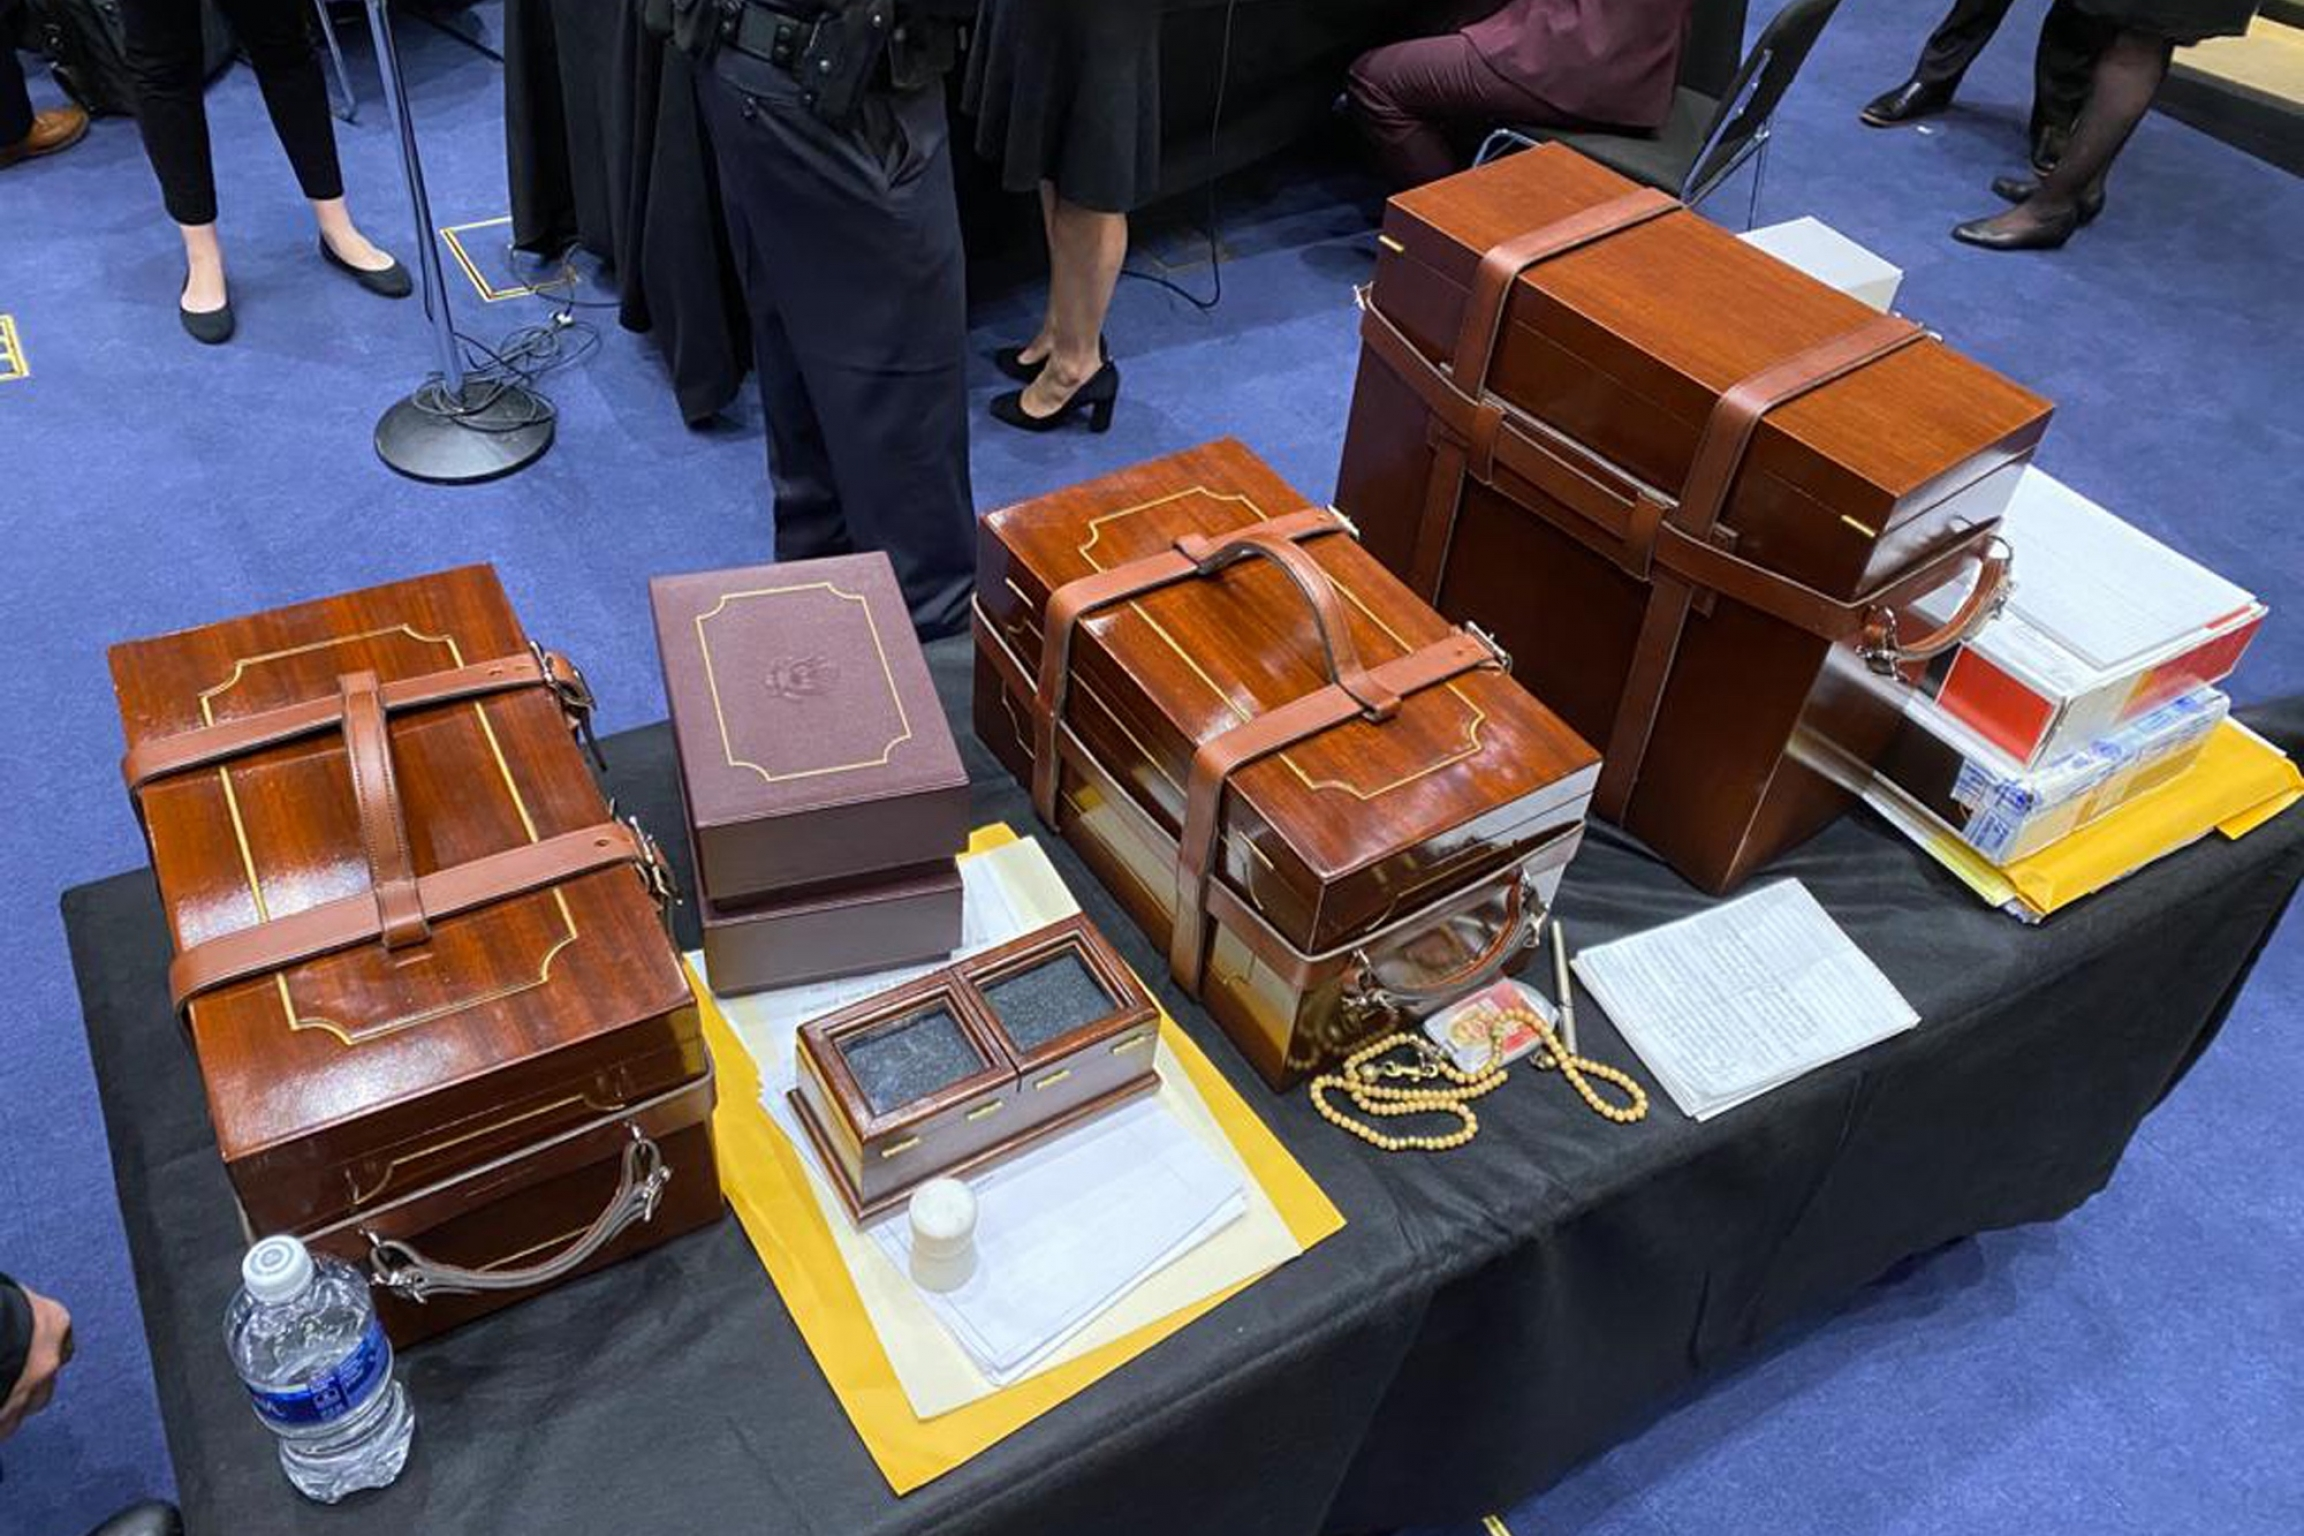 Electoral College ballots sit on a table after they were rescued from the Senate floor, Wednesday, Jan. 6, 2020, Washington, DC.